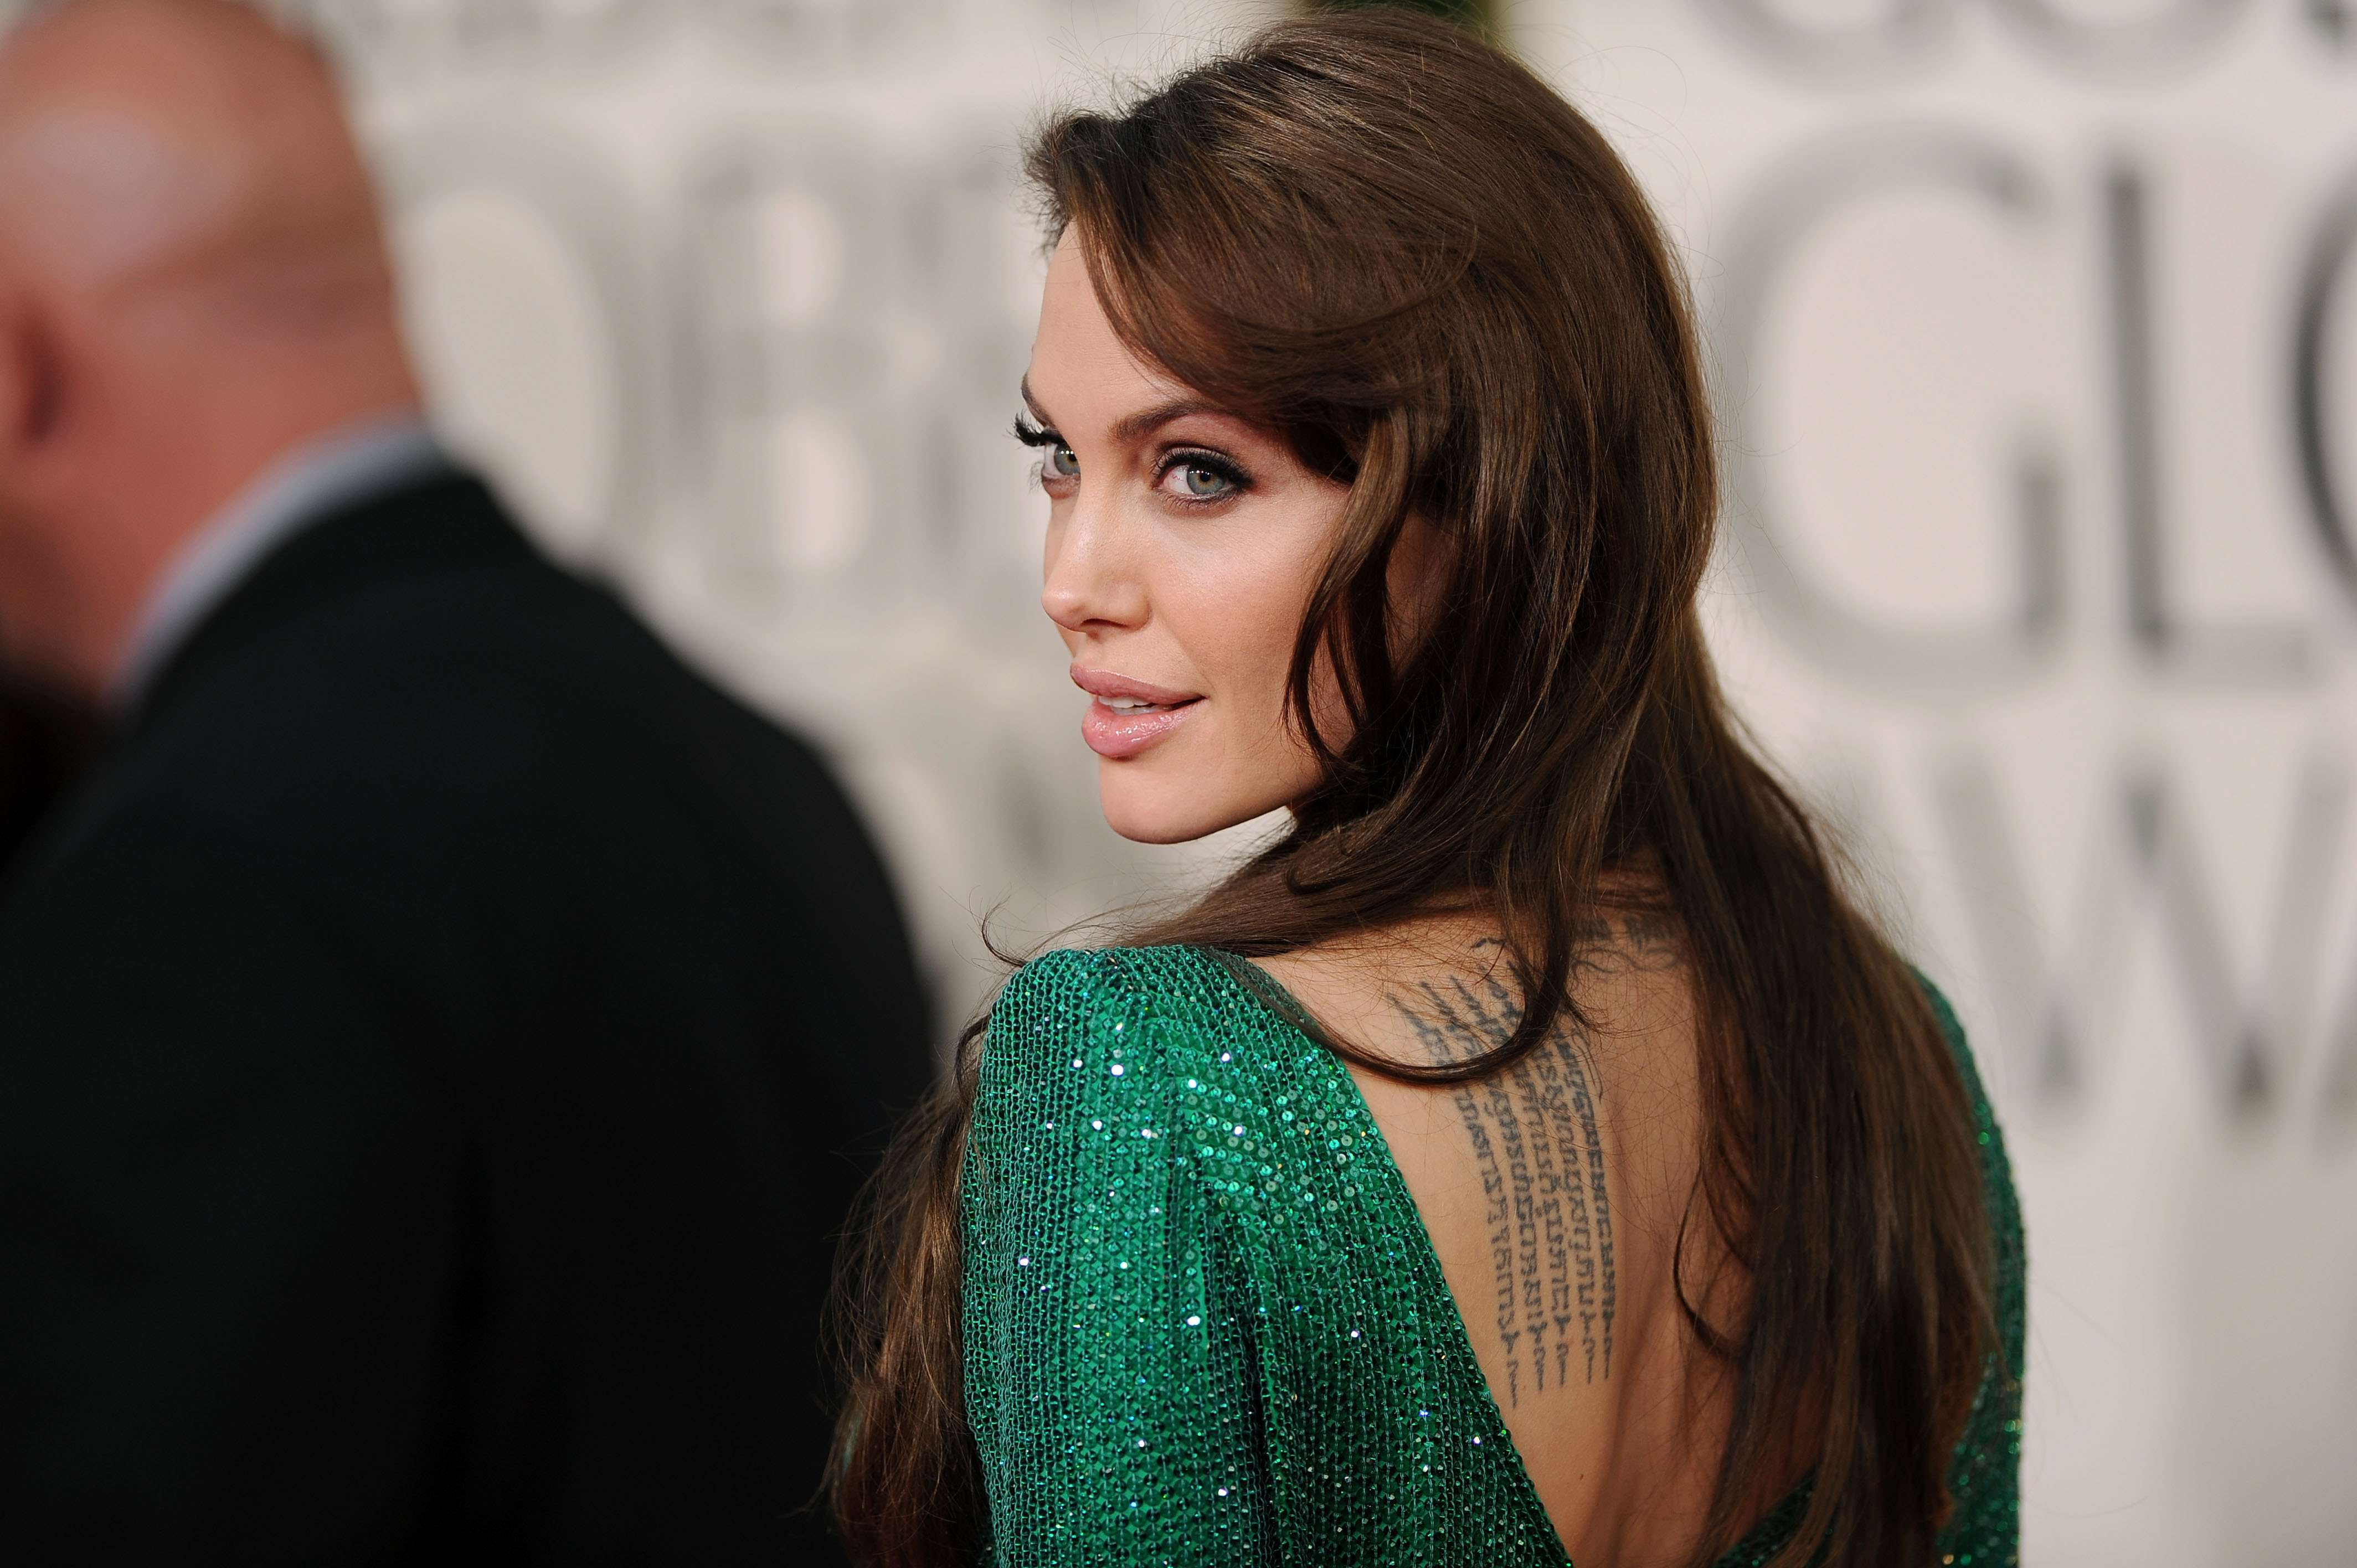 angelina jolie celebrity green dress wallpaper background 64286